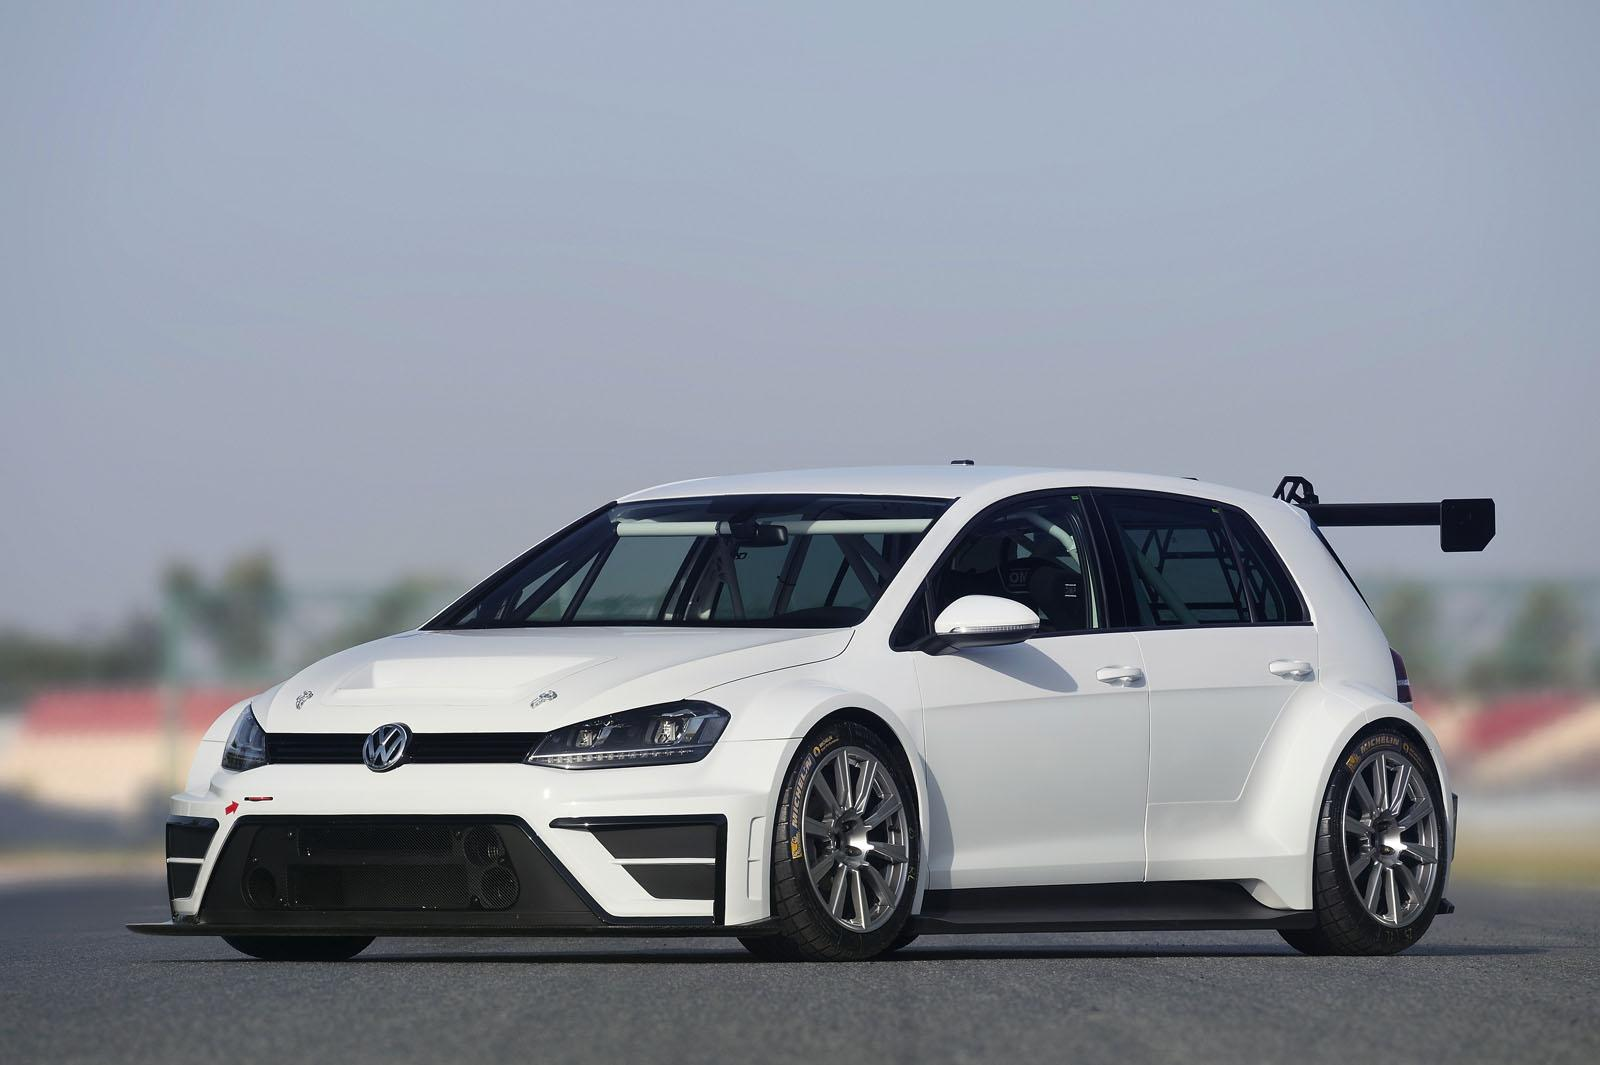 Volkswagen Golf Tcr on Polo 1 2 Tsi Engine